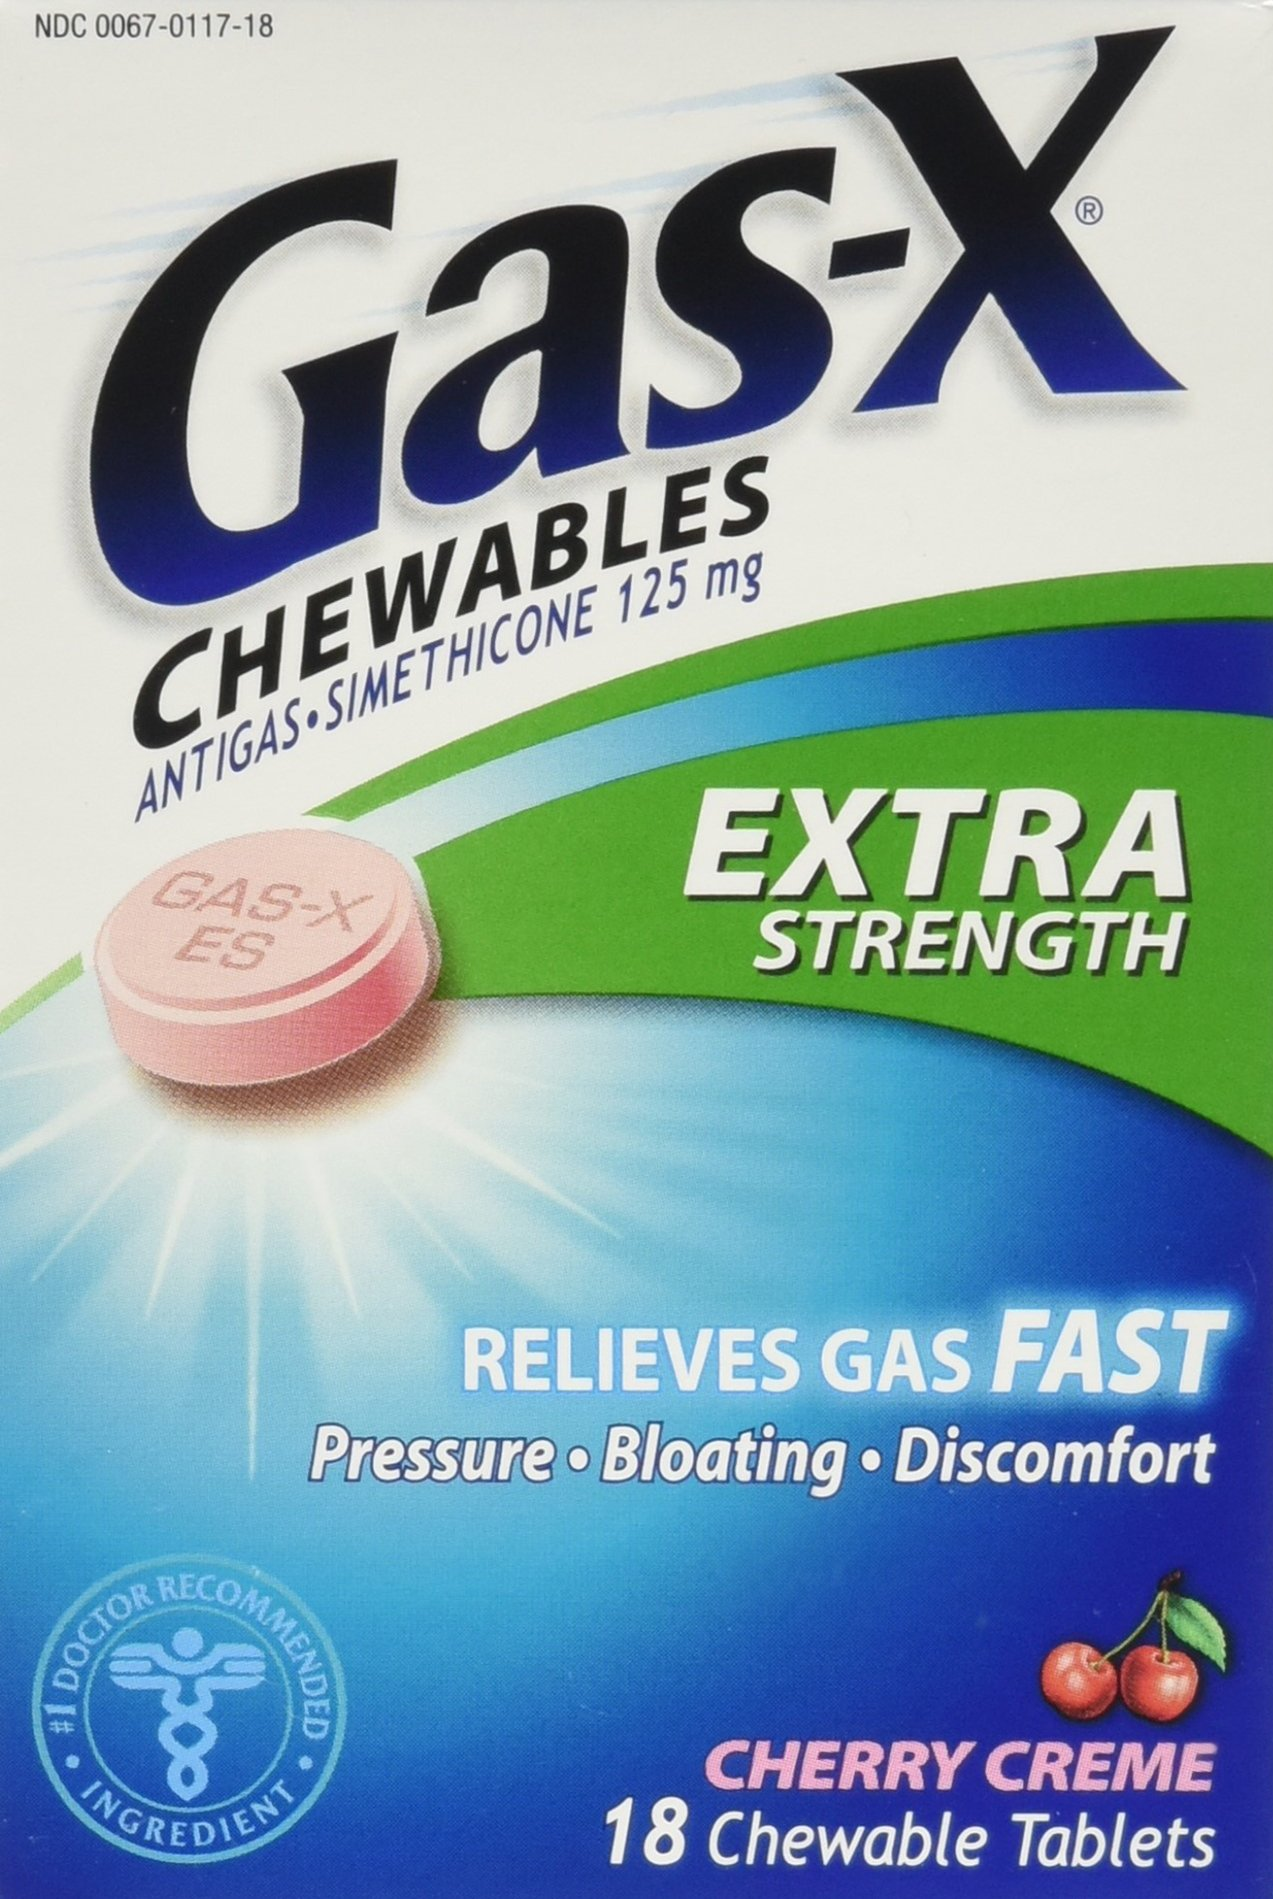 Gas-X Extra Strength Cherry Creme Chewable Tablets, 54 Count by Gas-X